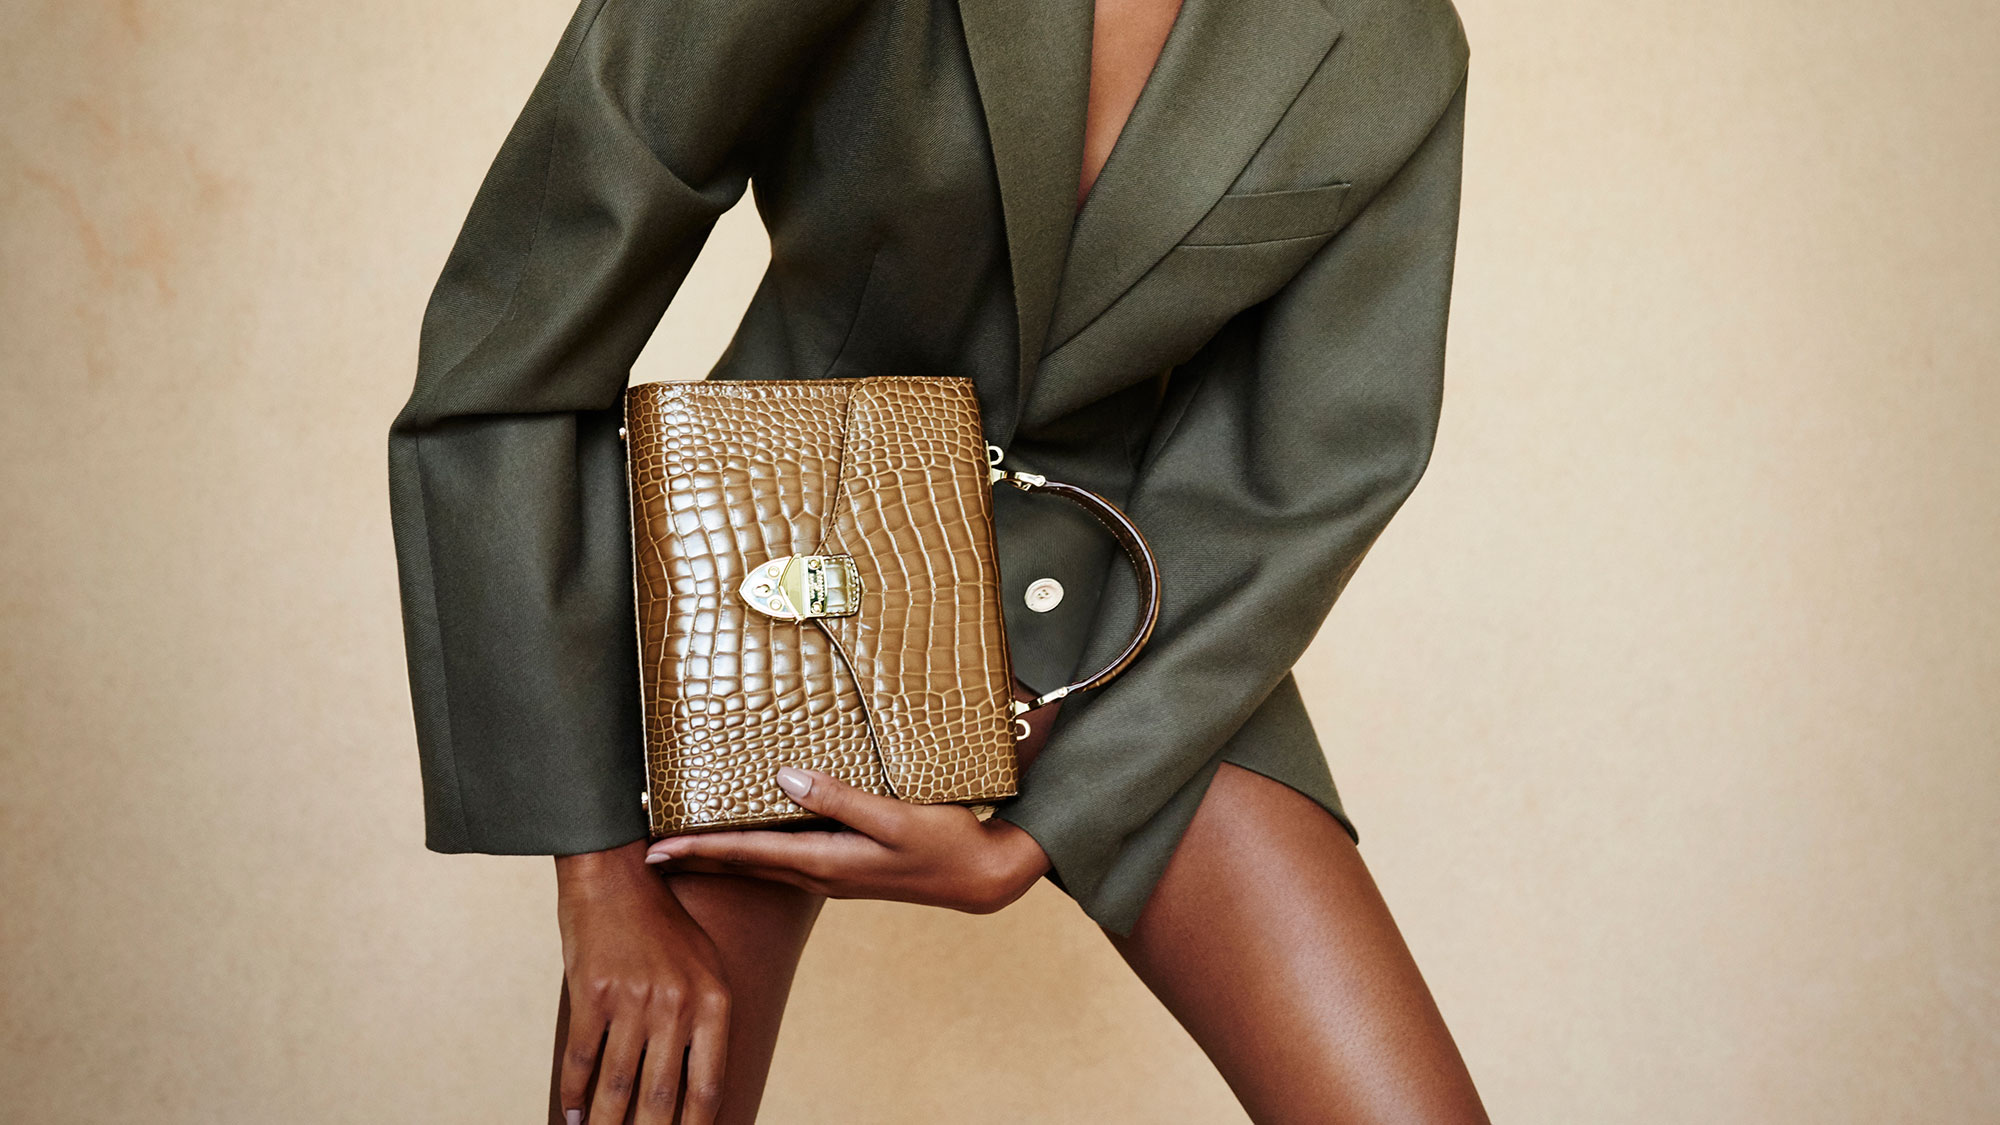 The sell-out Aspinal bag the celebrities can't get enough of